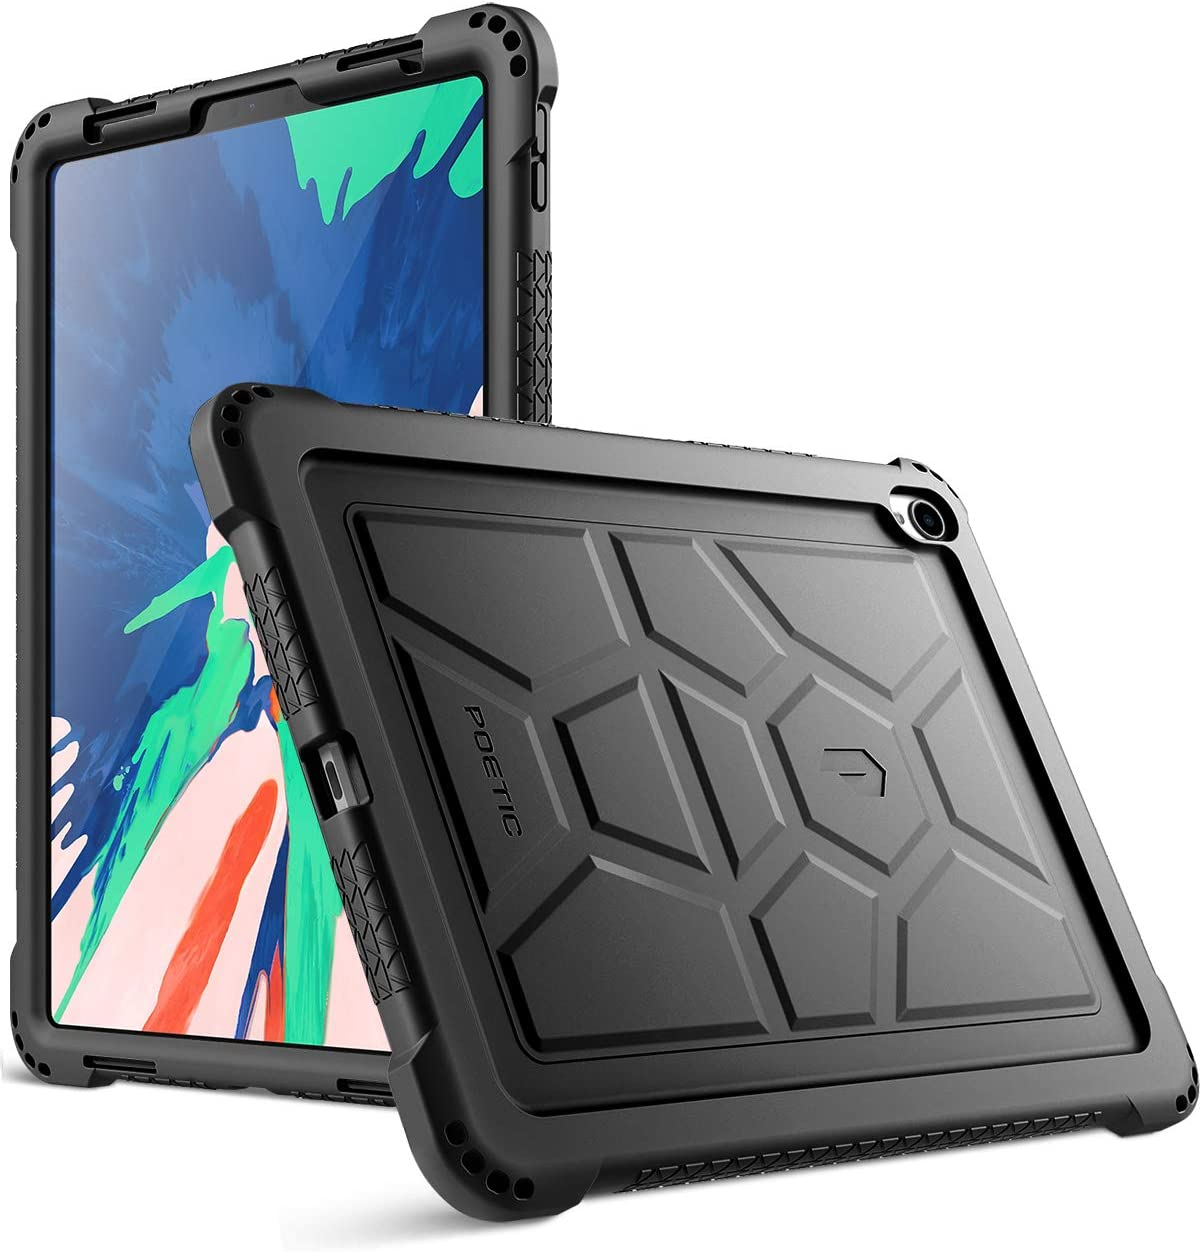 iPad Pro 11 inch Case, Poetic TurtleSkin Series [Corner Protection][Grip][Not Supported Apple Pencil Magnetic Attachment] Protective Silicone Case for Apple iPad Pro 11 Inch (2018) - Black